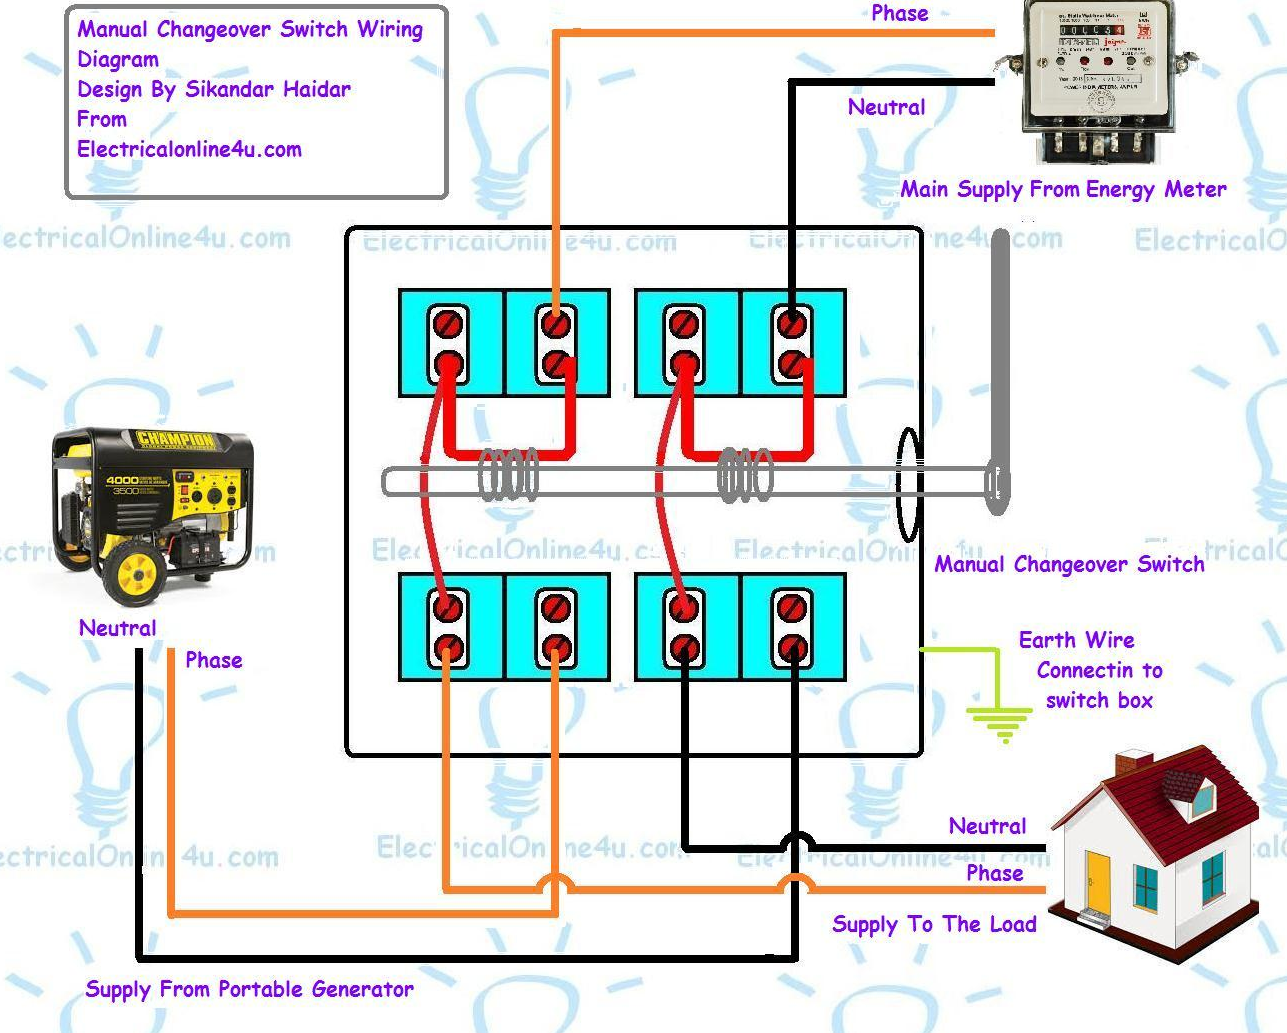 manual changeover switch wiring diagram for portable generator rh electricalonline4u com Onan Transfer Switch Wiring Diagram Whole House Transfer Switch Diagram